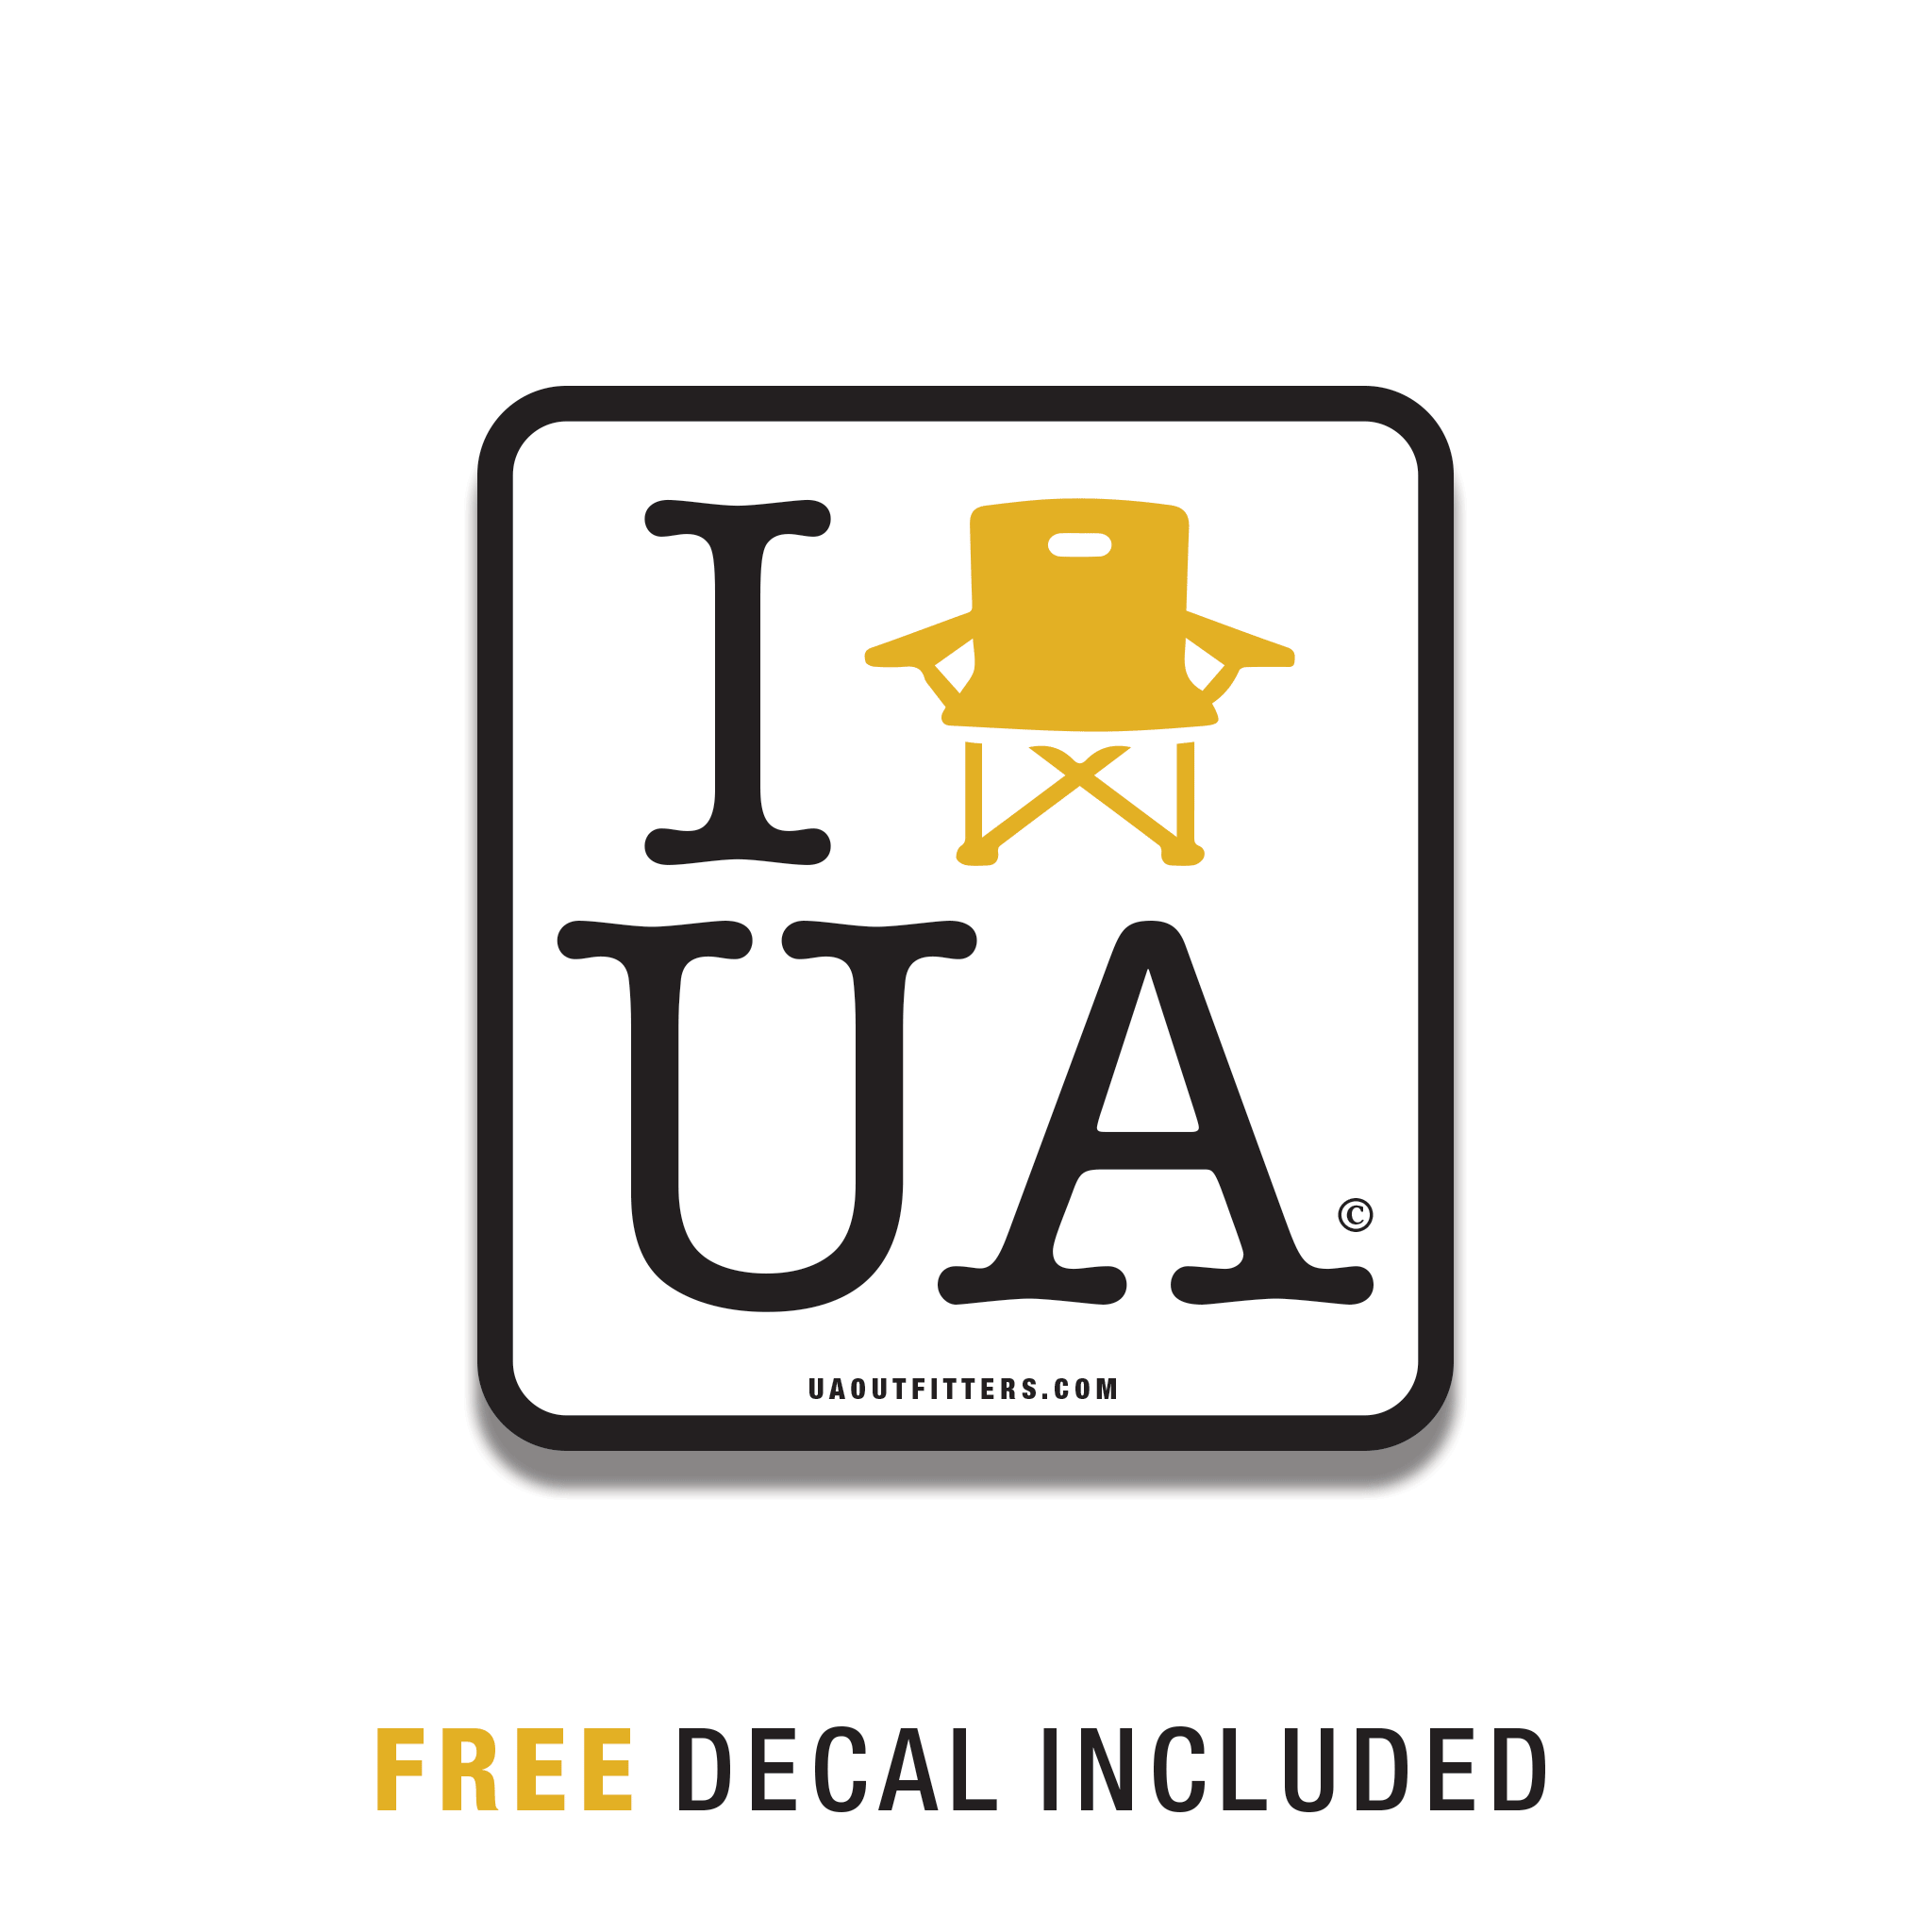 I lawn chair UA free decal included with every tee